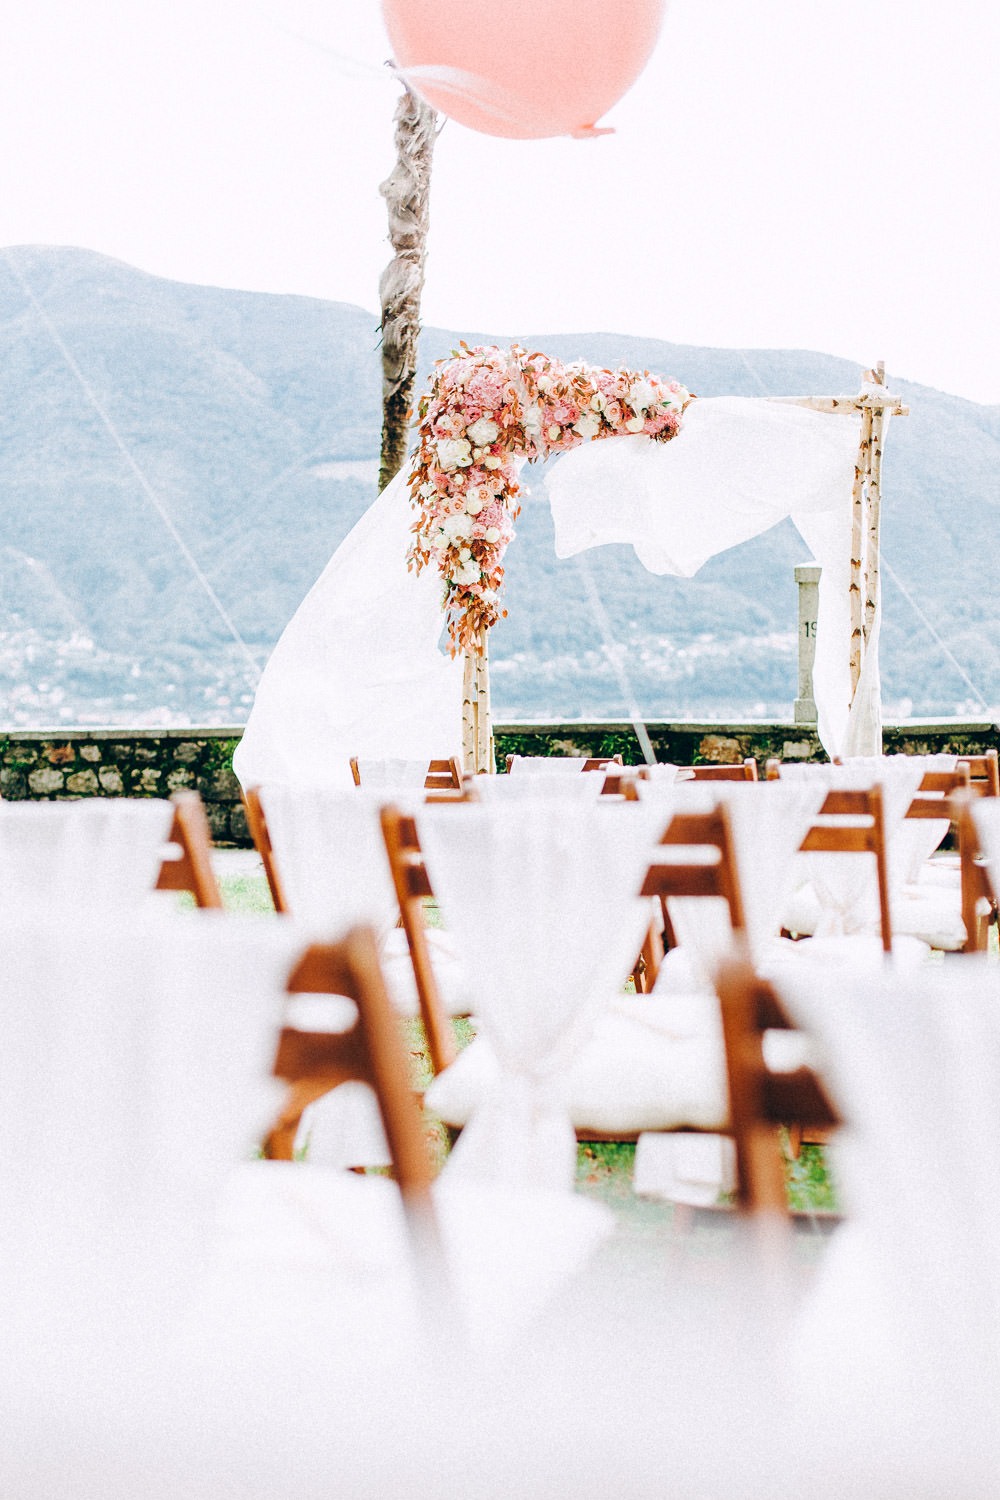 davidandkathrin-com-ticino-brissago-wedding-photographer-065